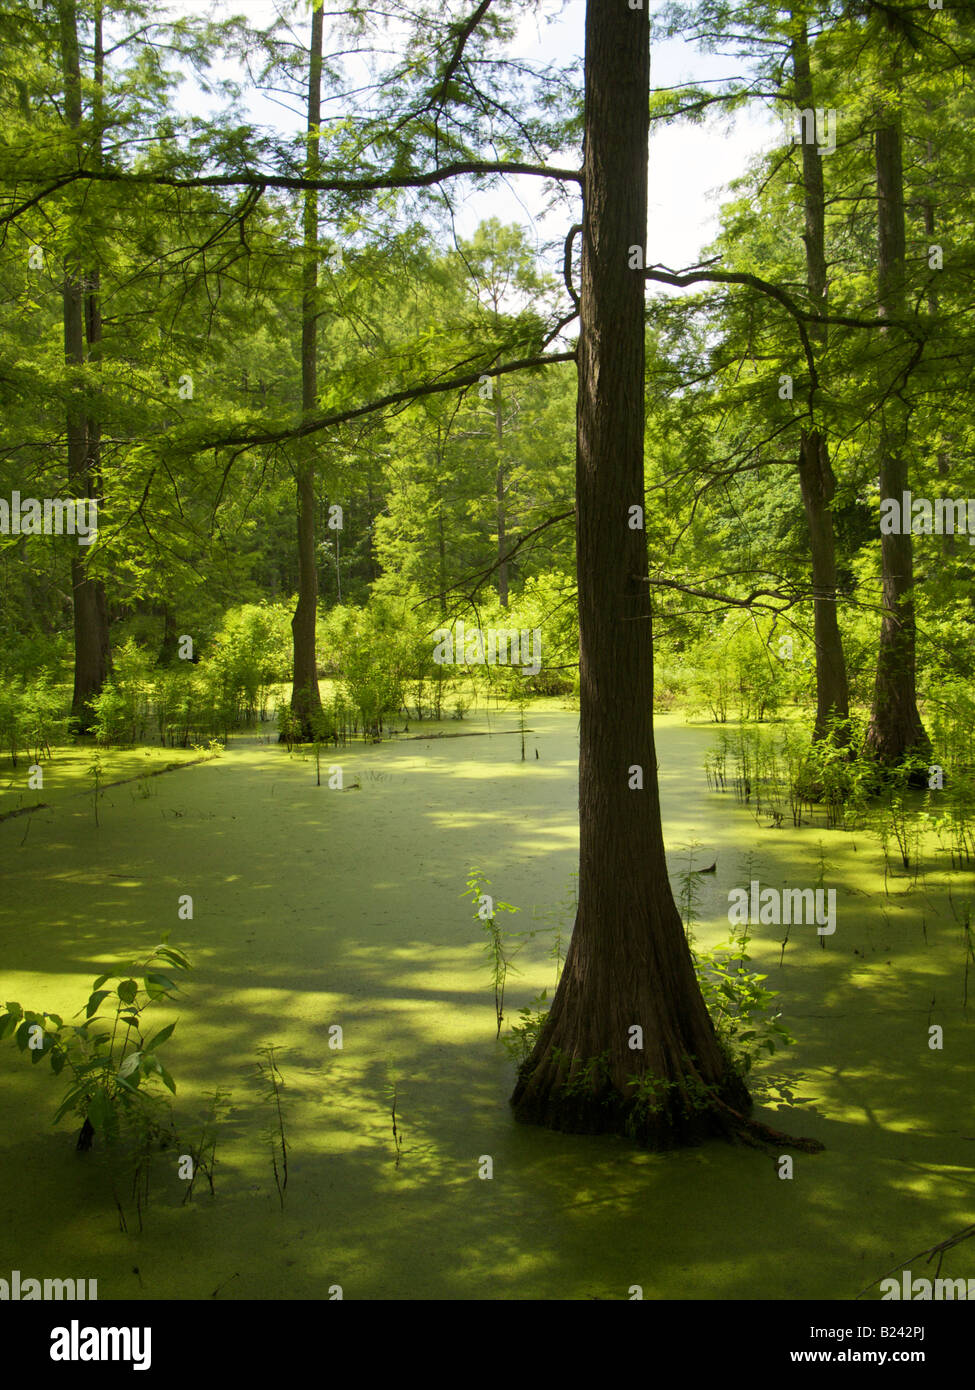 Heron Pond in the Cache River State Natural Area Southern Illinois Bald cypress swamp - Stock Image